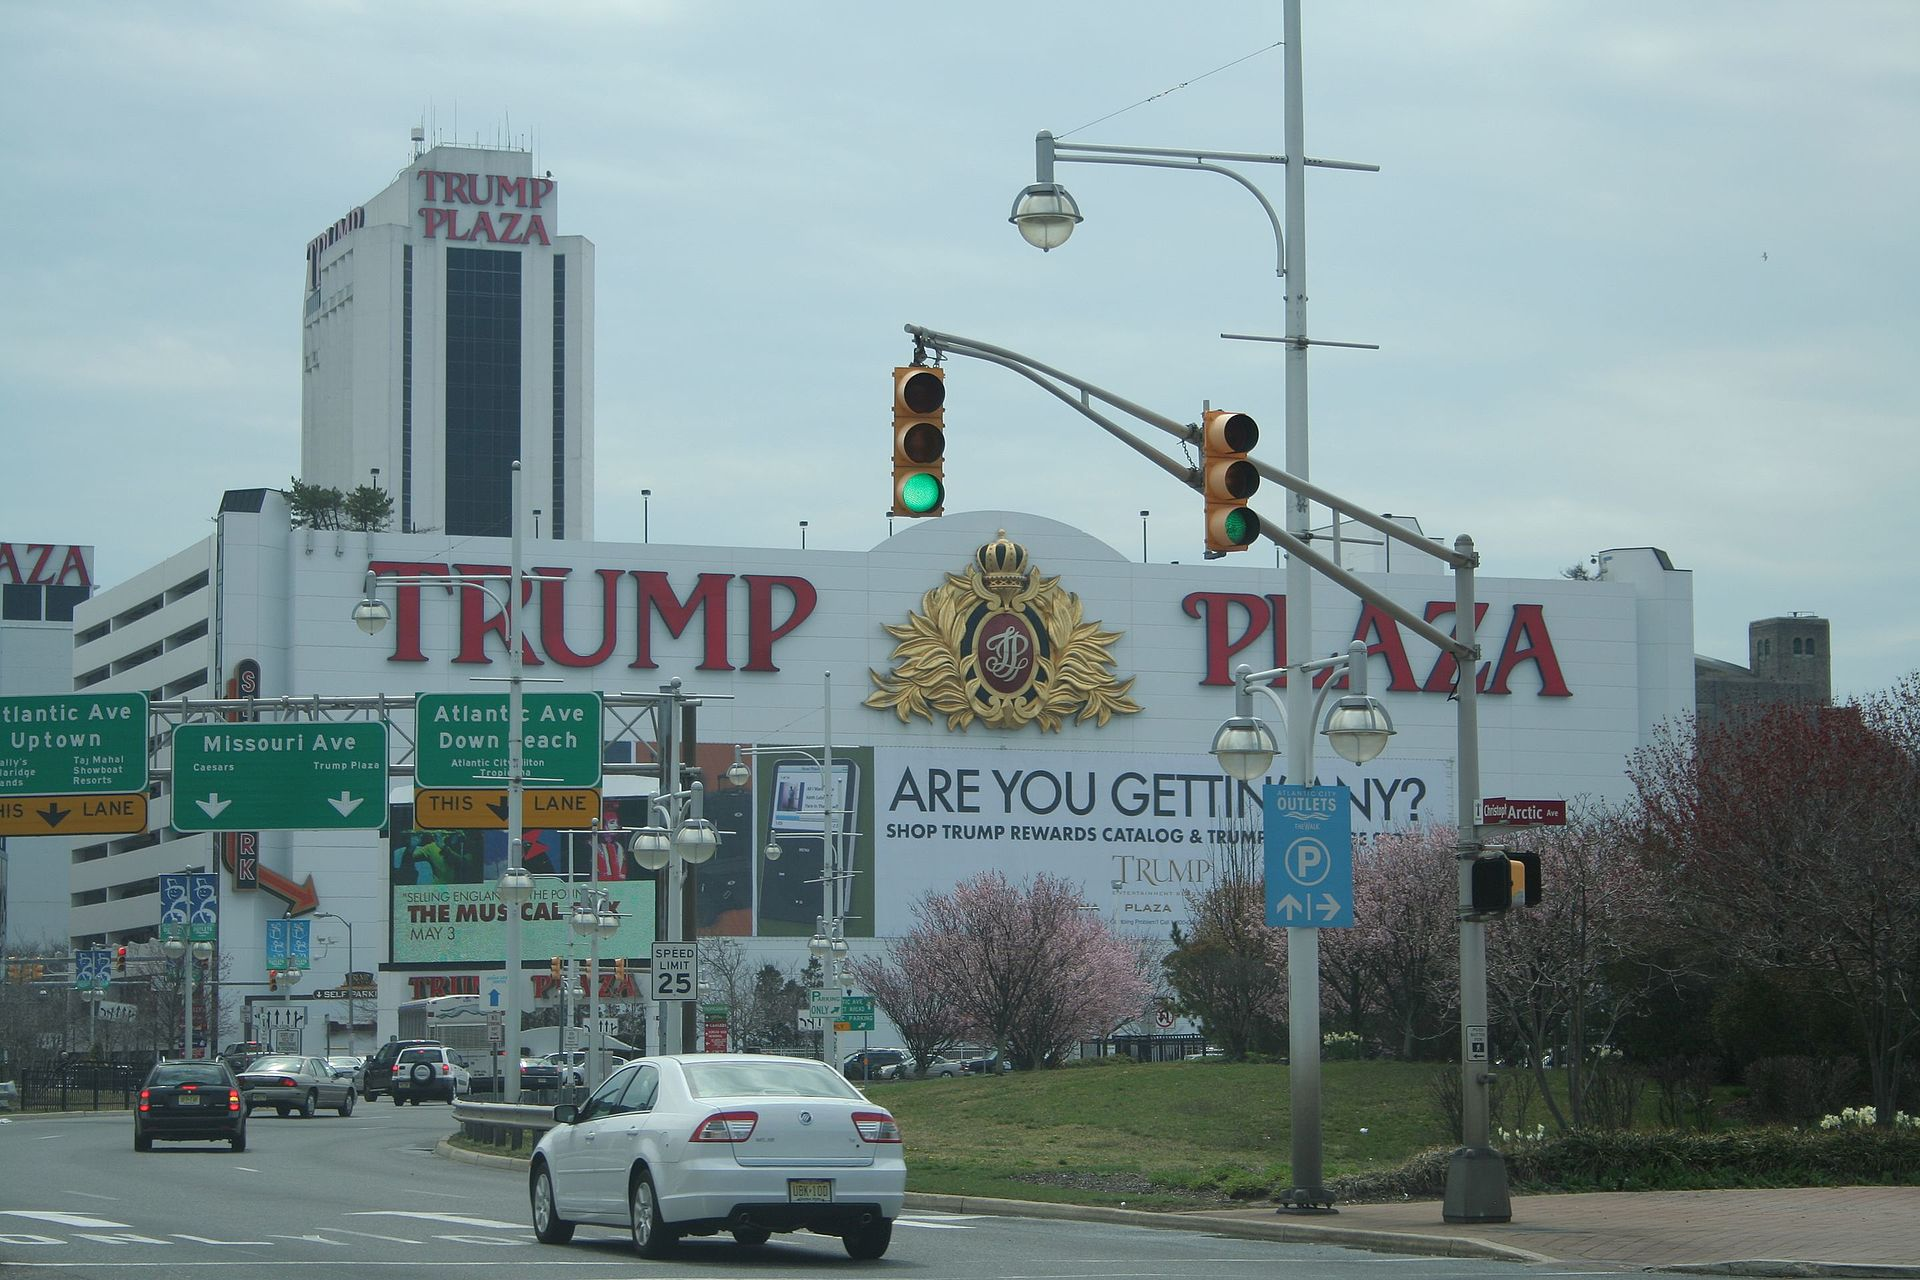 a trump casino in atlantic city